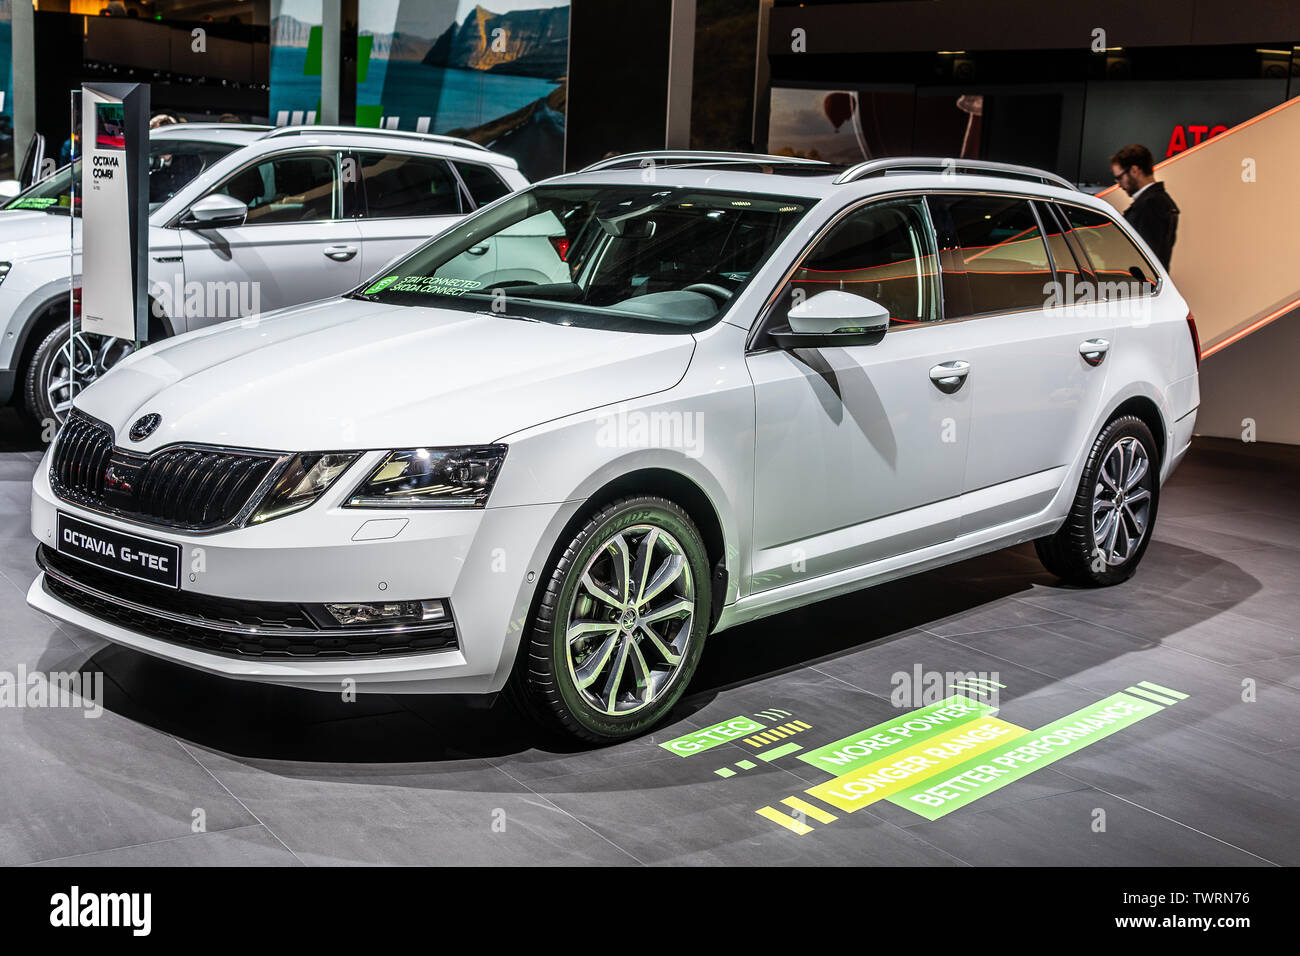 Skoda Octavia High Resolution Stock Photography And Images Alamy